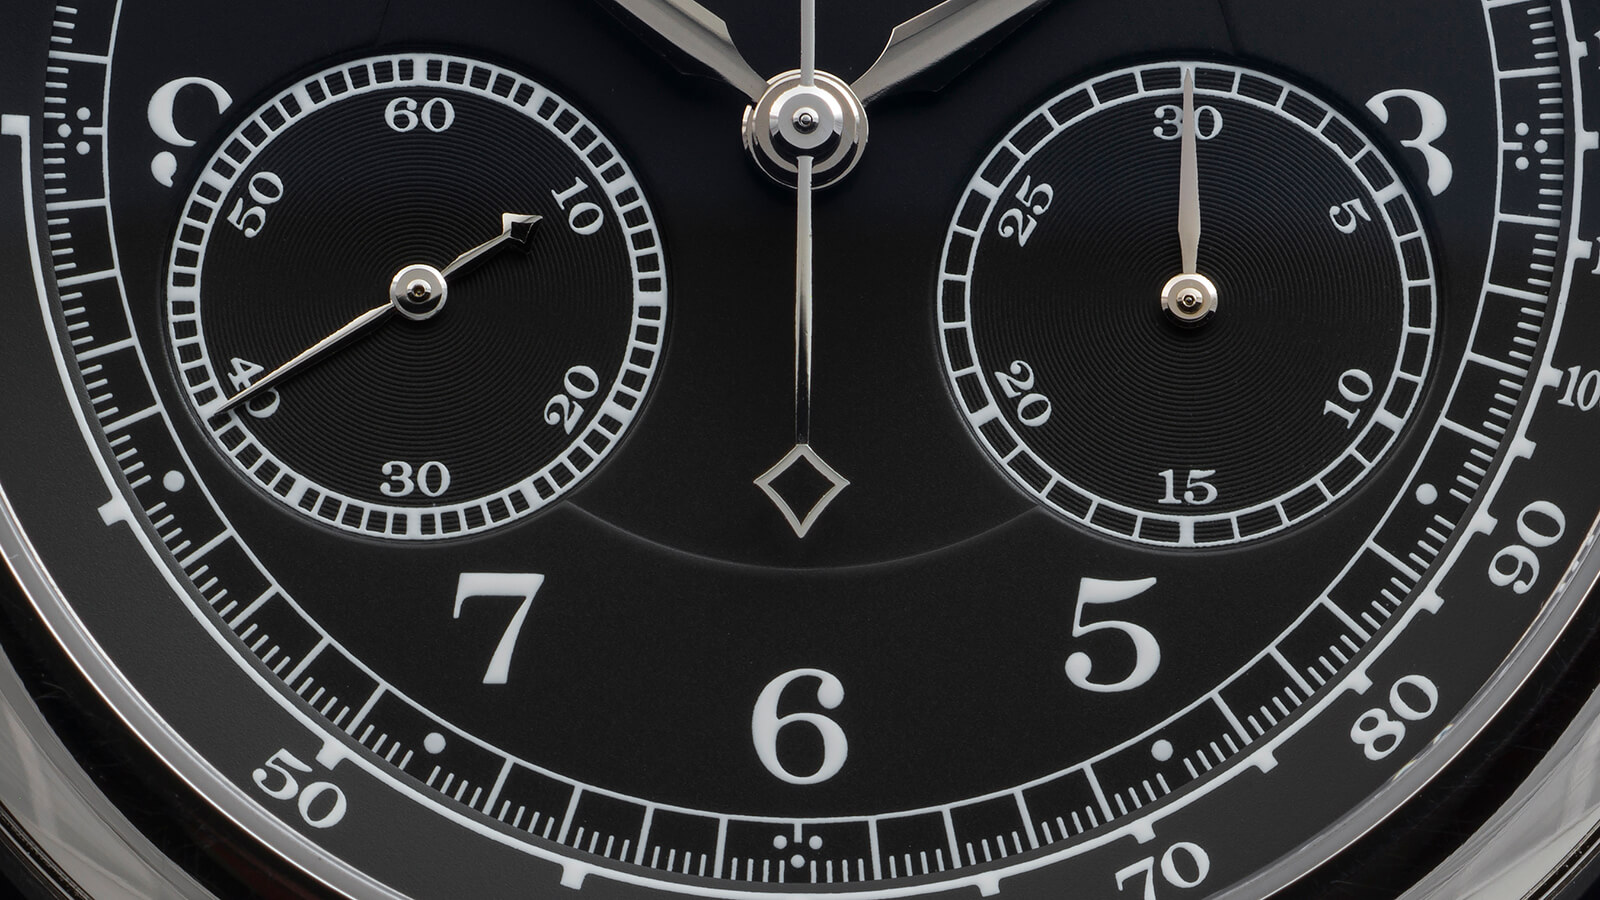 Feeling groovy: dial detail, A. Lange & Söhne 1815 Chronograph